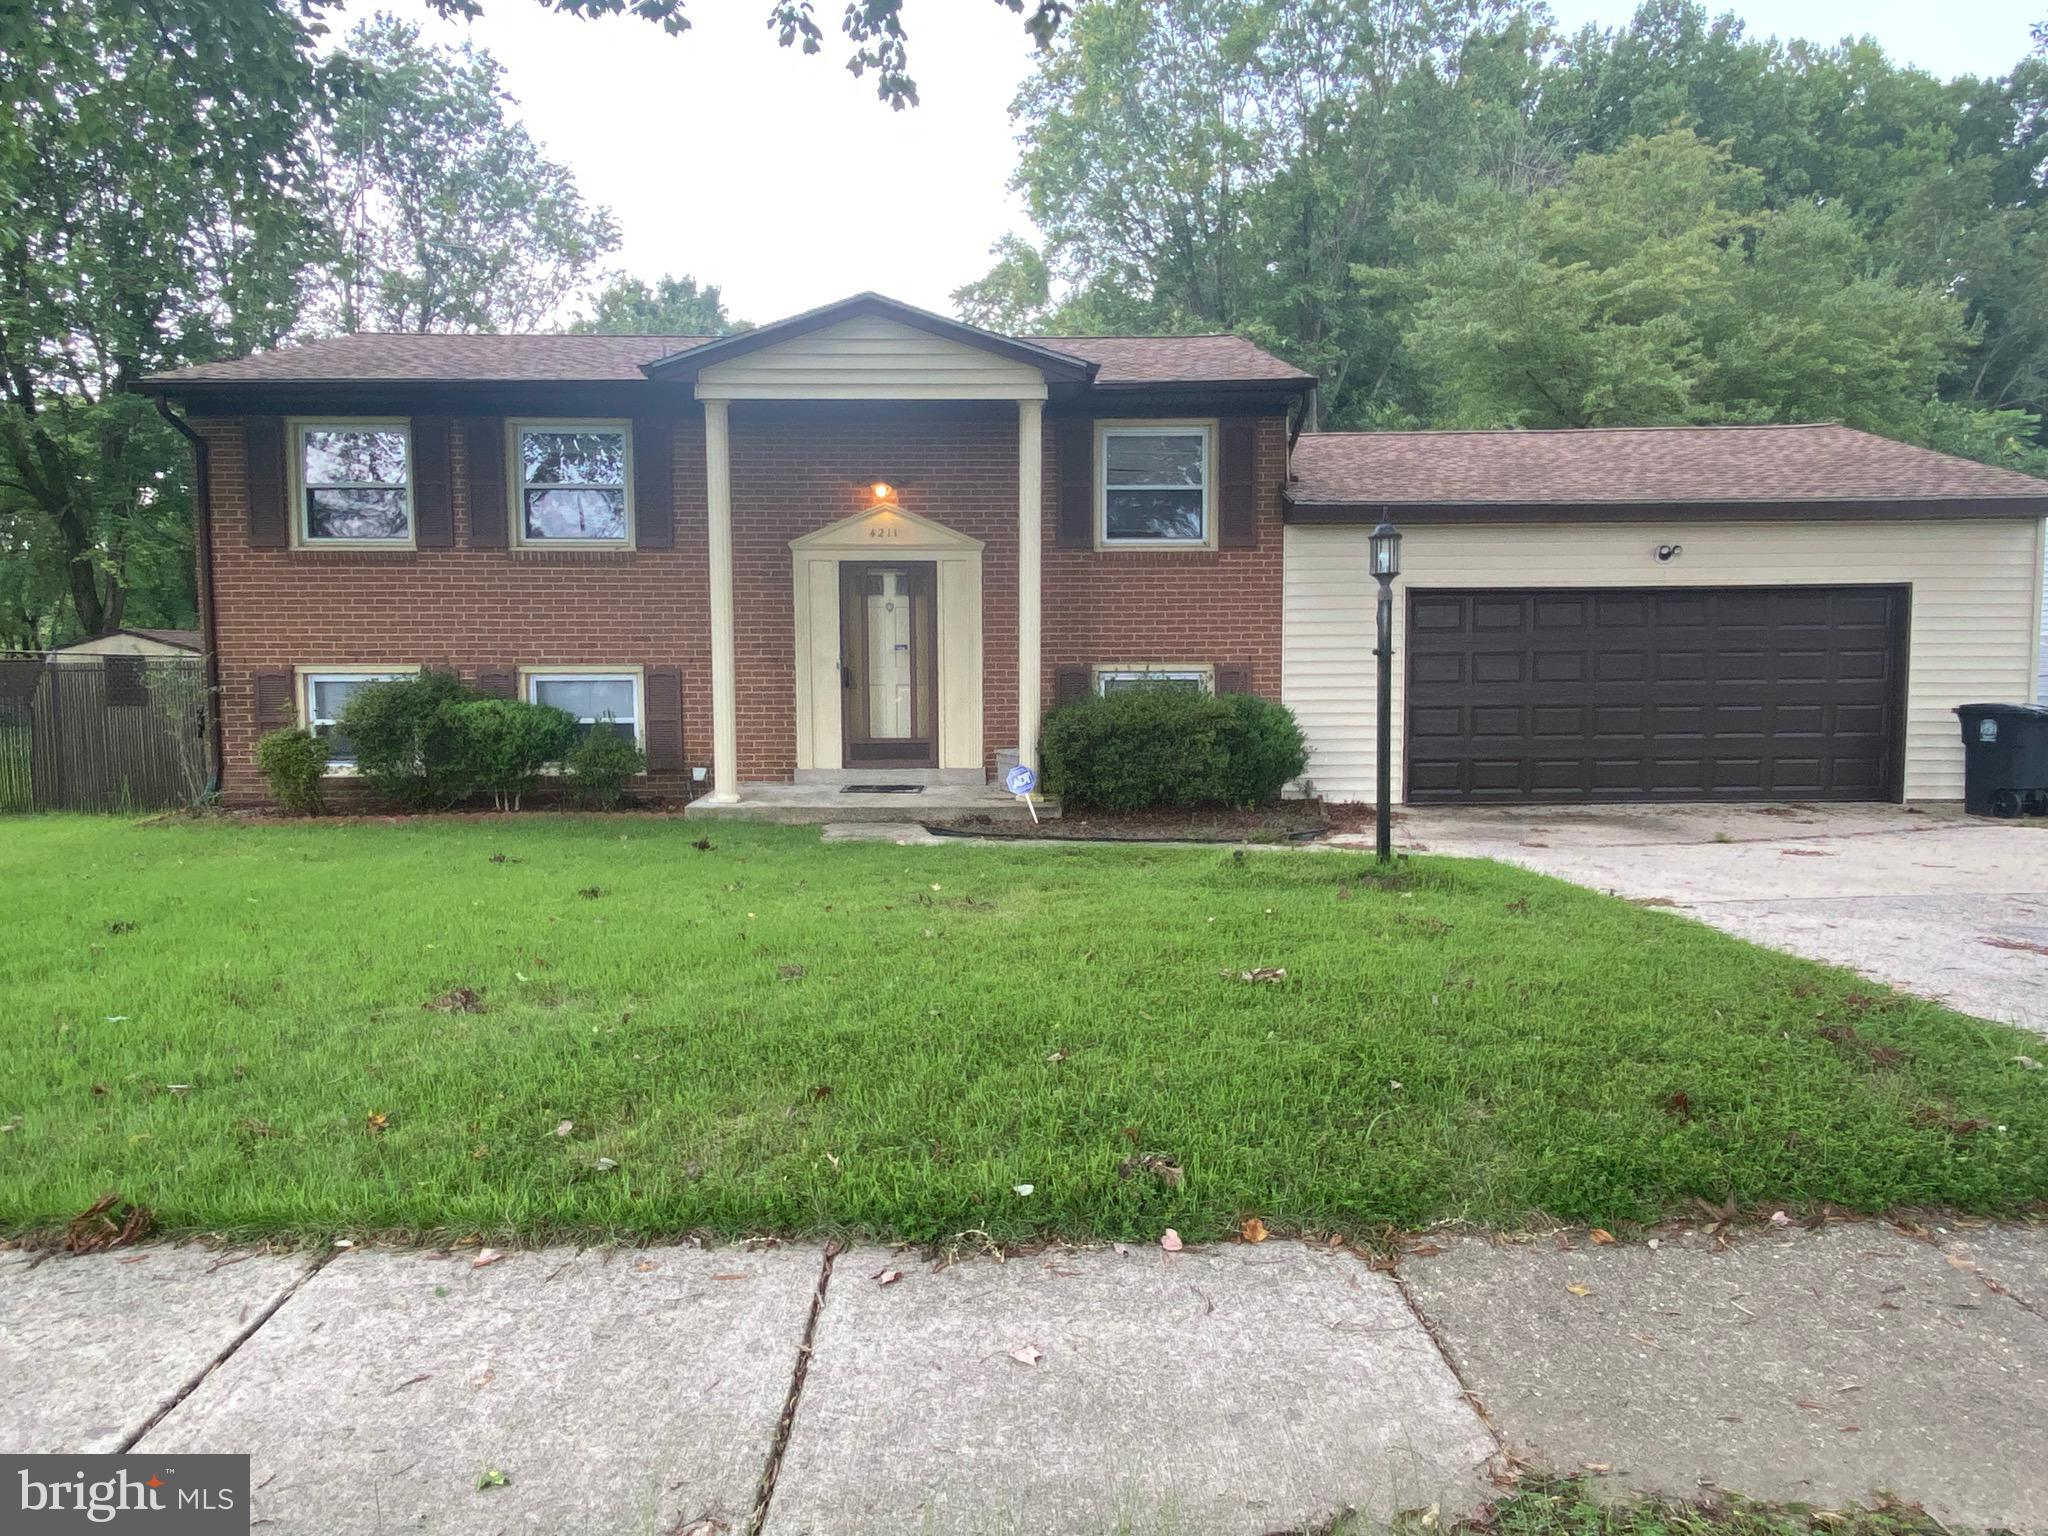 Great home in an ideal location.  This solid property boasts an upper-level LR and 3 bedrooms.  Lowe